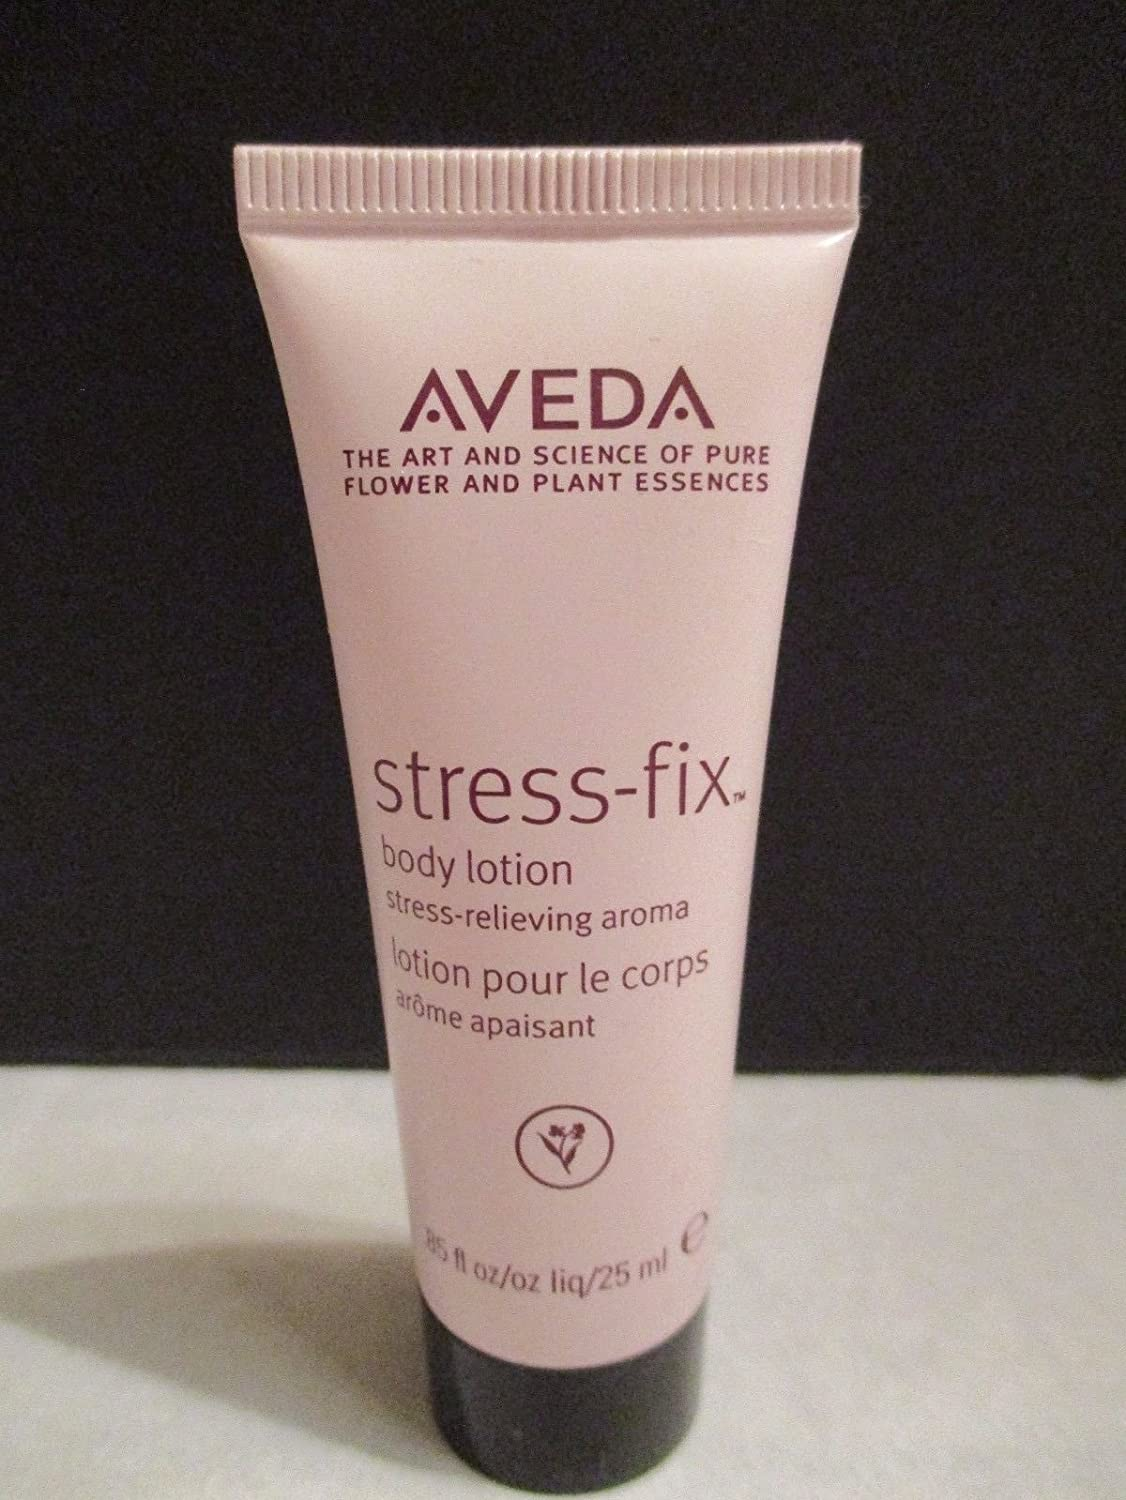 Aveda Stress Fix Body Lotion, Deluxe Sample Size.85 oz